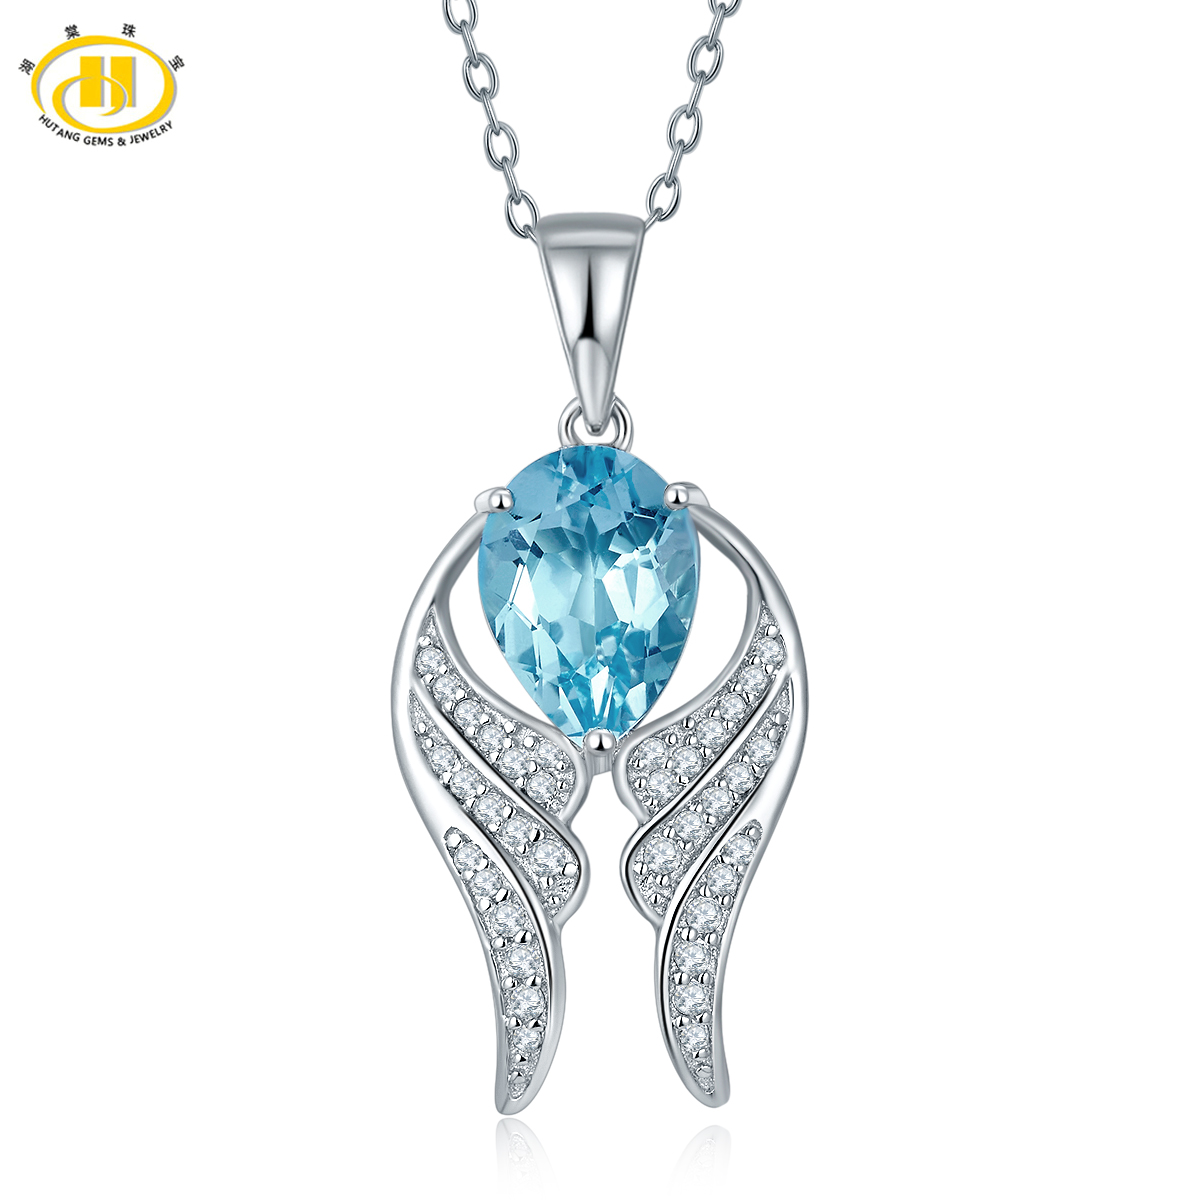 Hutang Stylish Gemstone Wing Pendant Natural Blue Topaz Solid 925 Sterling Silver Necklace for Women's Wife Girlfriend Gift 2017